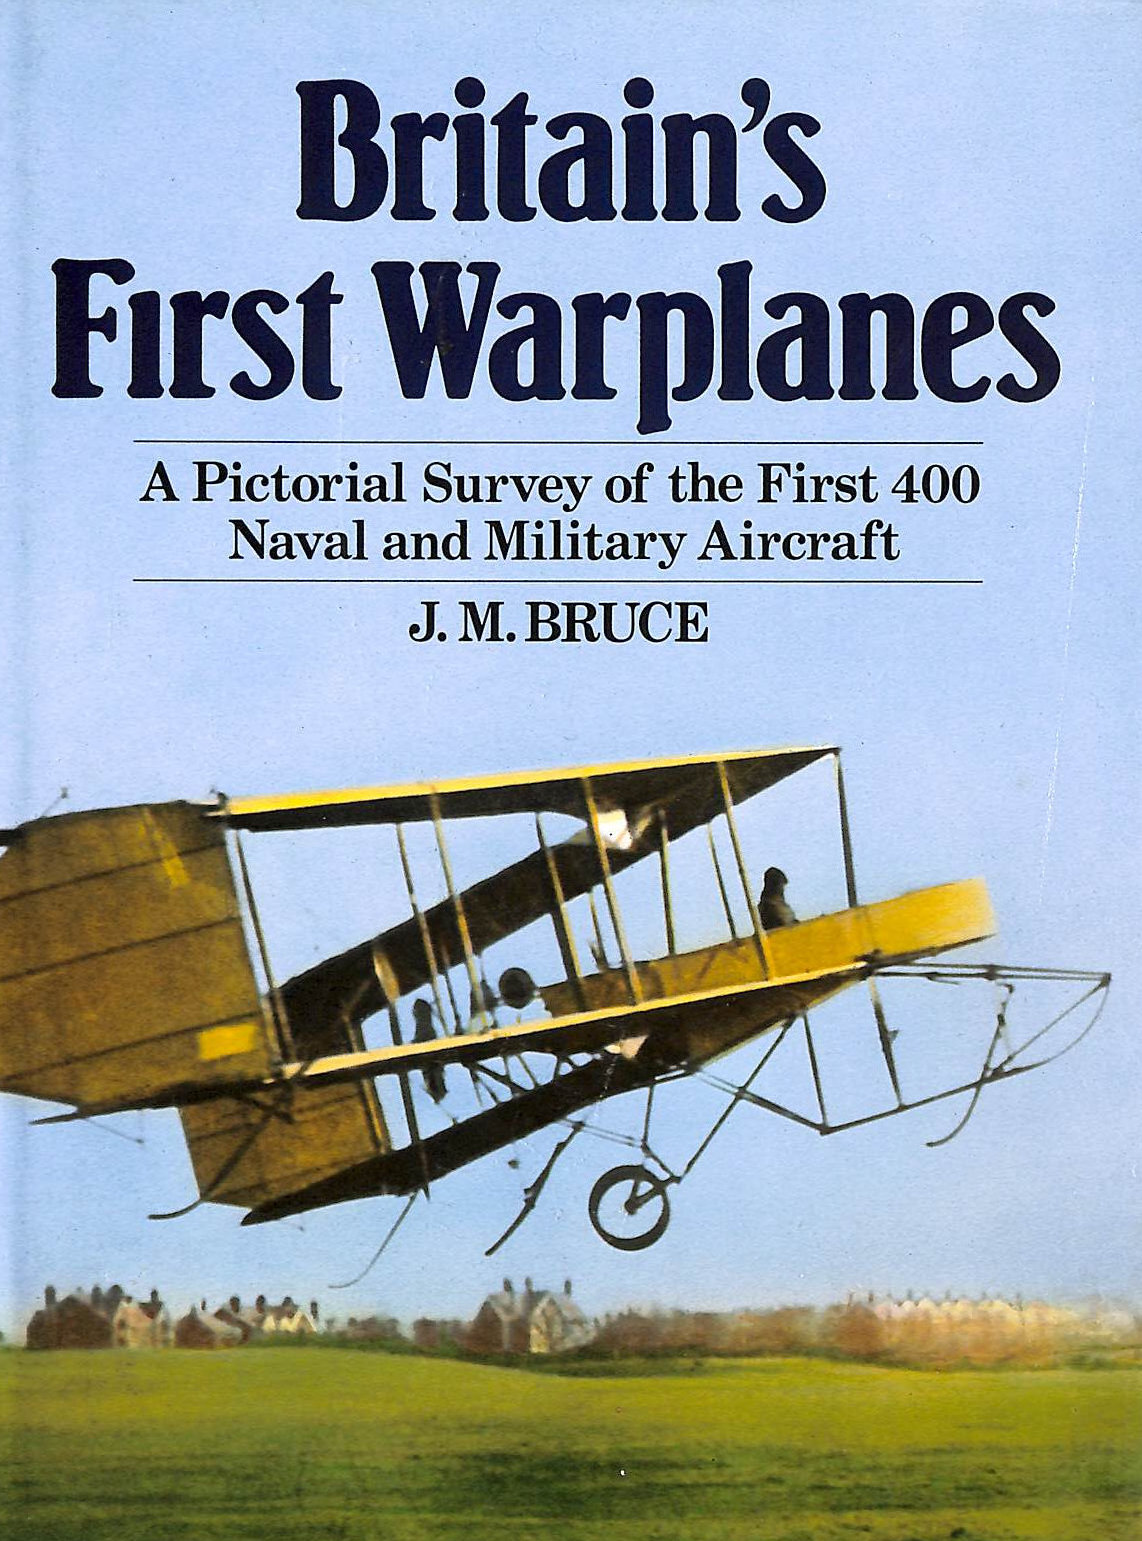 Image for Britain's First Warplanes: A Pictorial Survey of the First 400 Naval and Military Aircraft